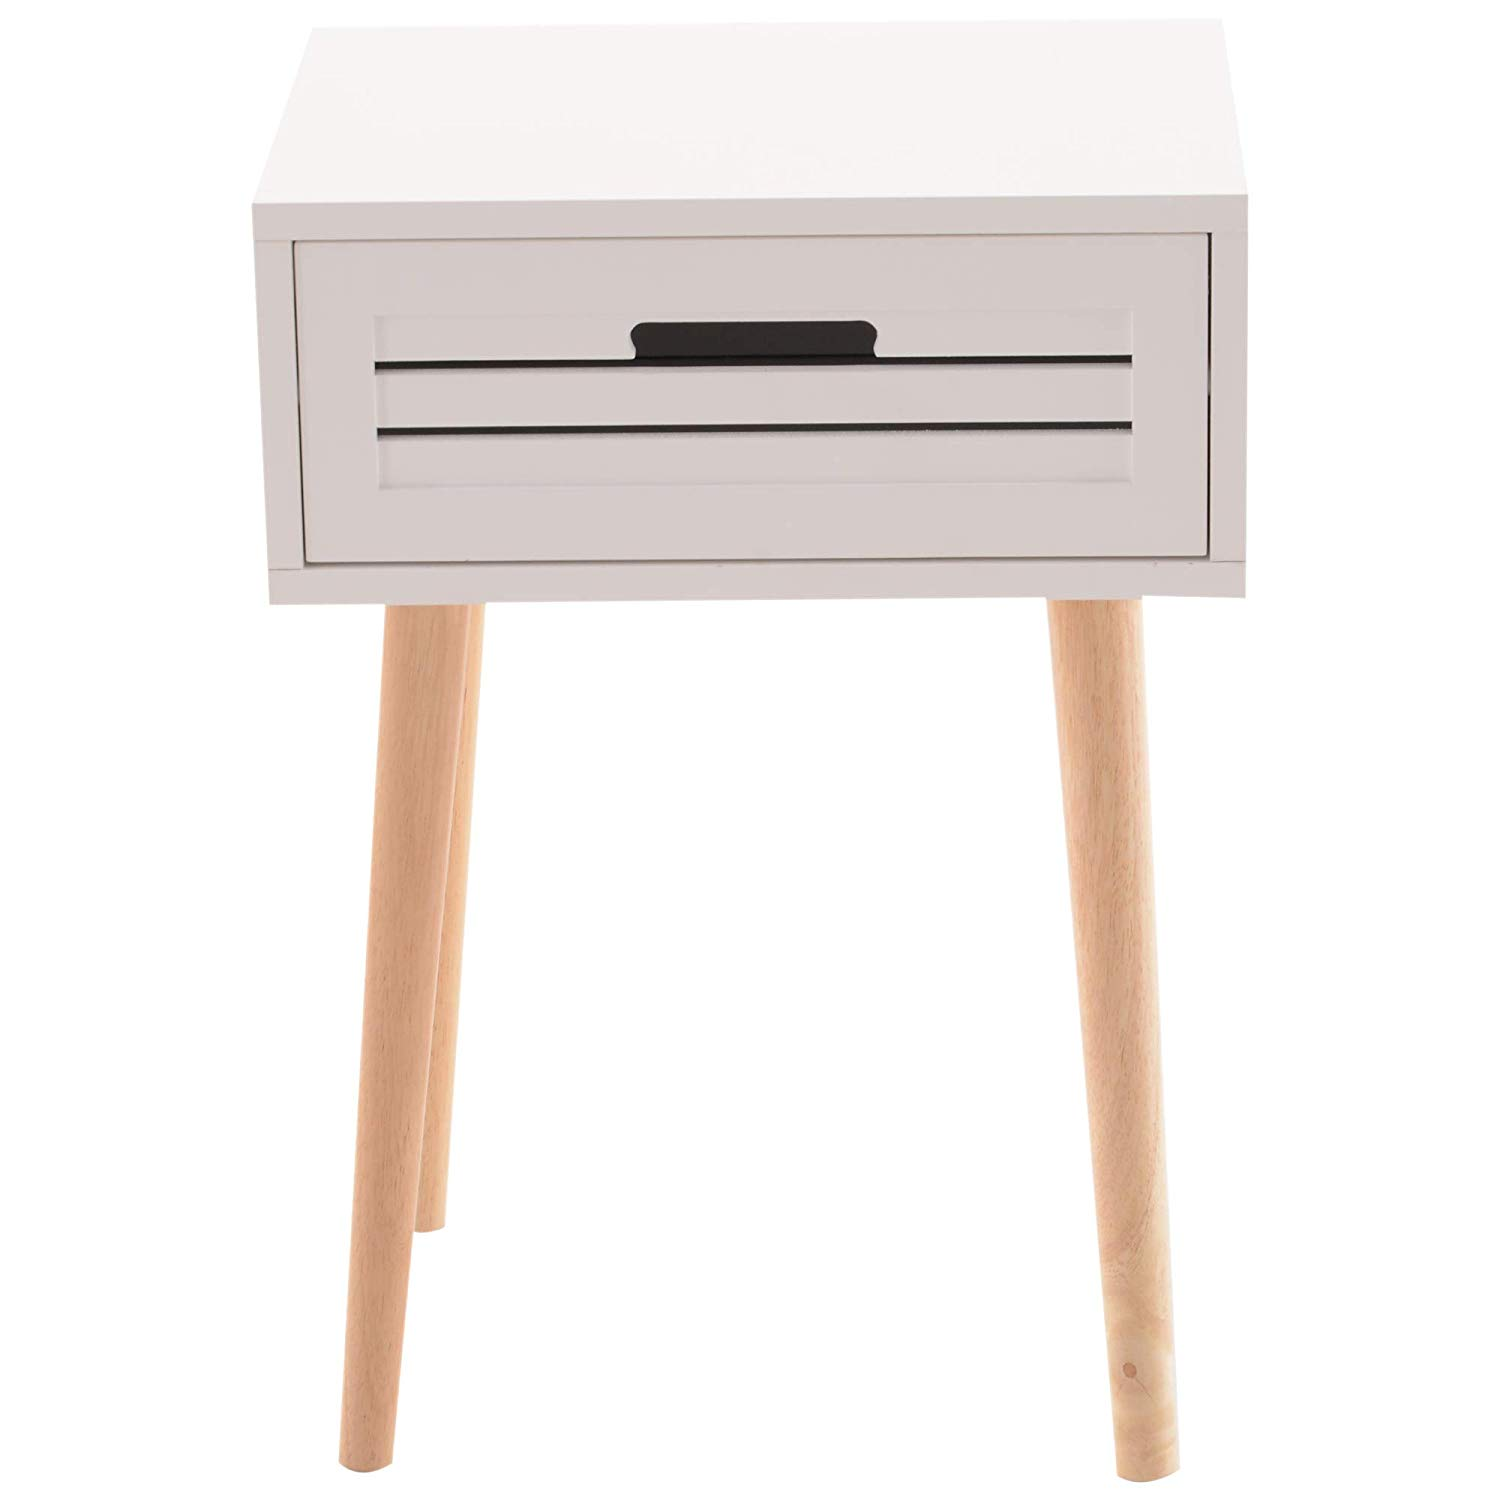 homcom wood mid century modern end table night stand accent tables with drawers storage drawer white kitchen dining mirrored sofa silver black and gold countertop chairs long